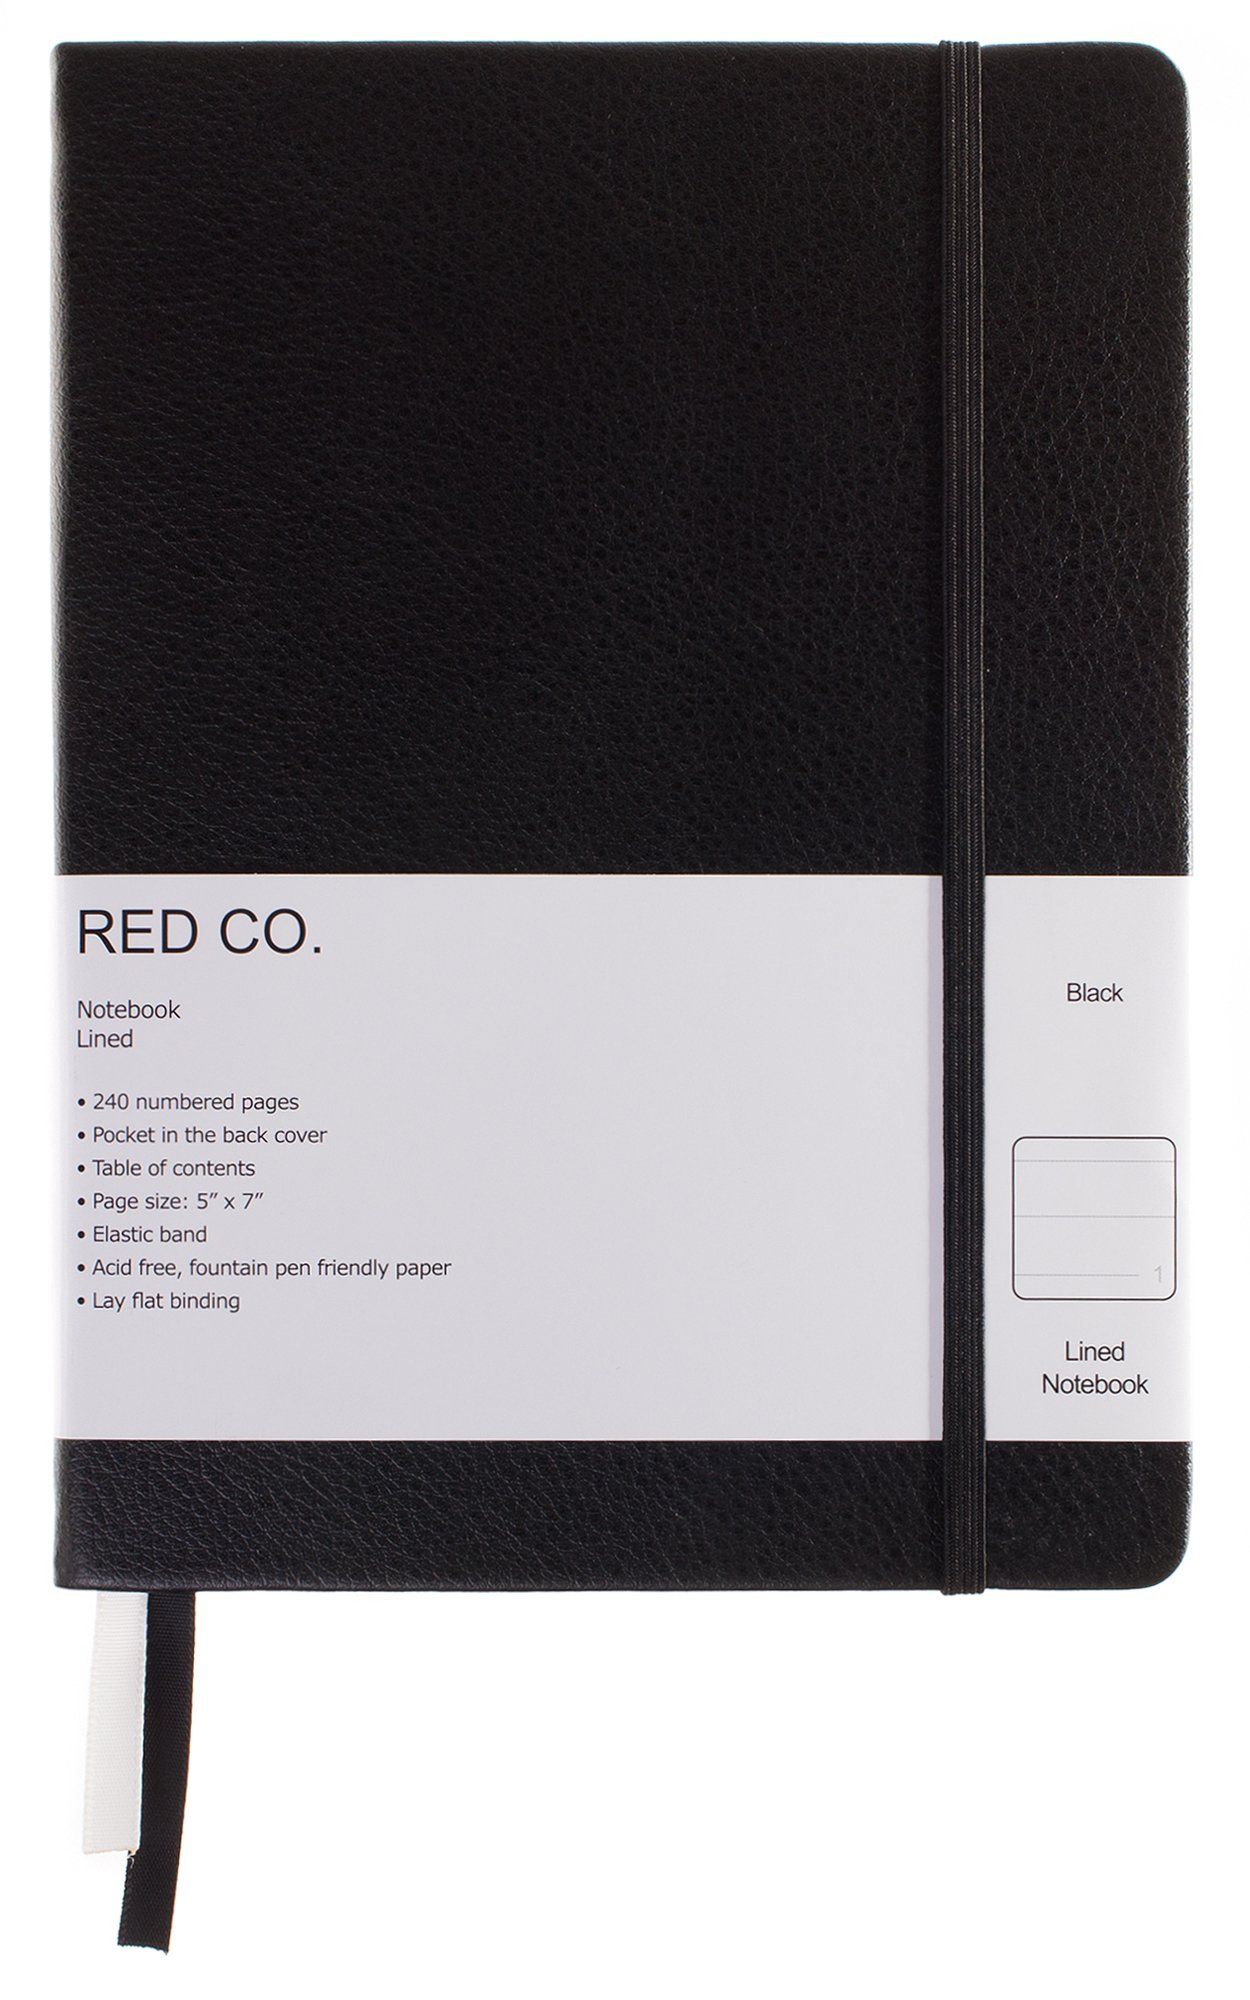 Red Co Classic Black Hardcover Notebook Journal, 240 Pages, 5''x7''- Lined/Ruled (Black Lined 100 GSM)